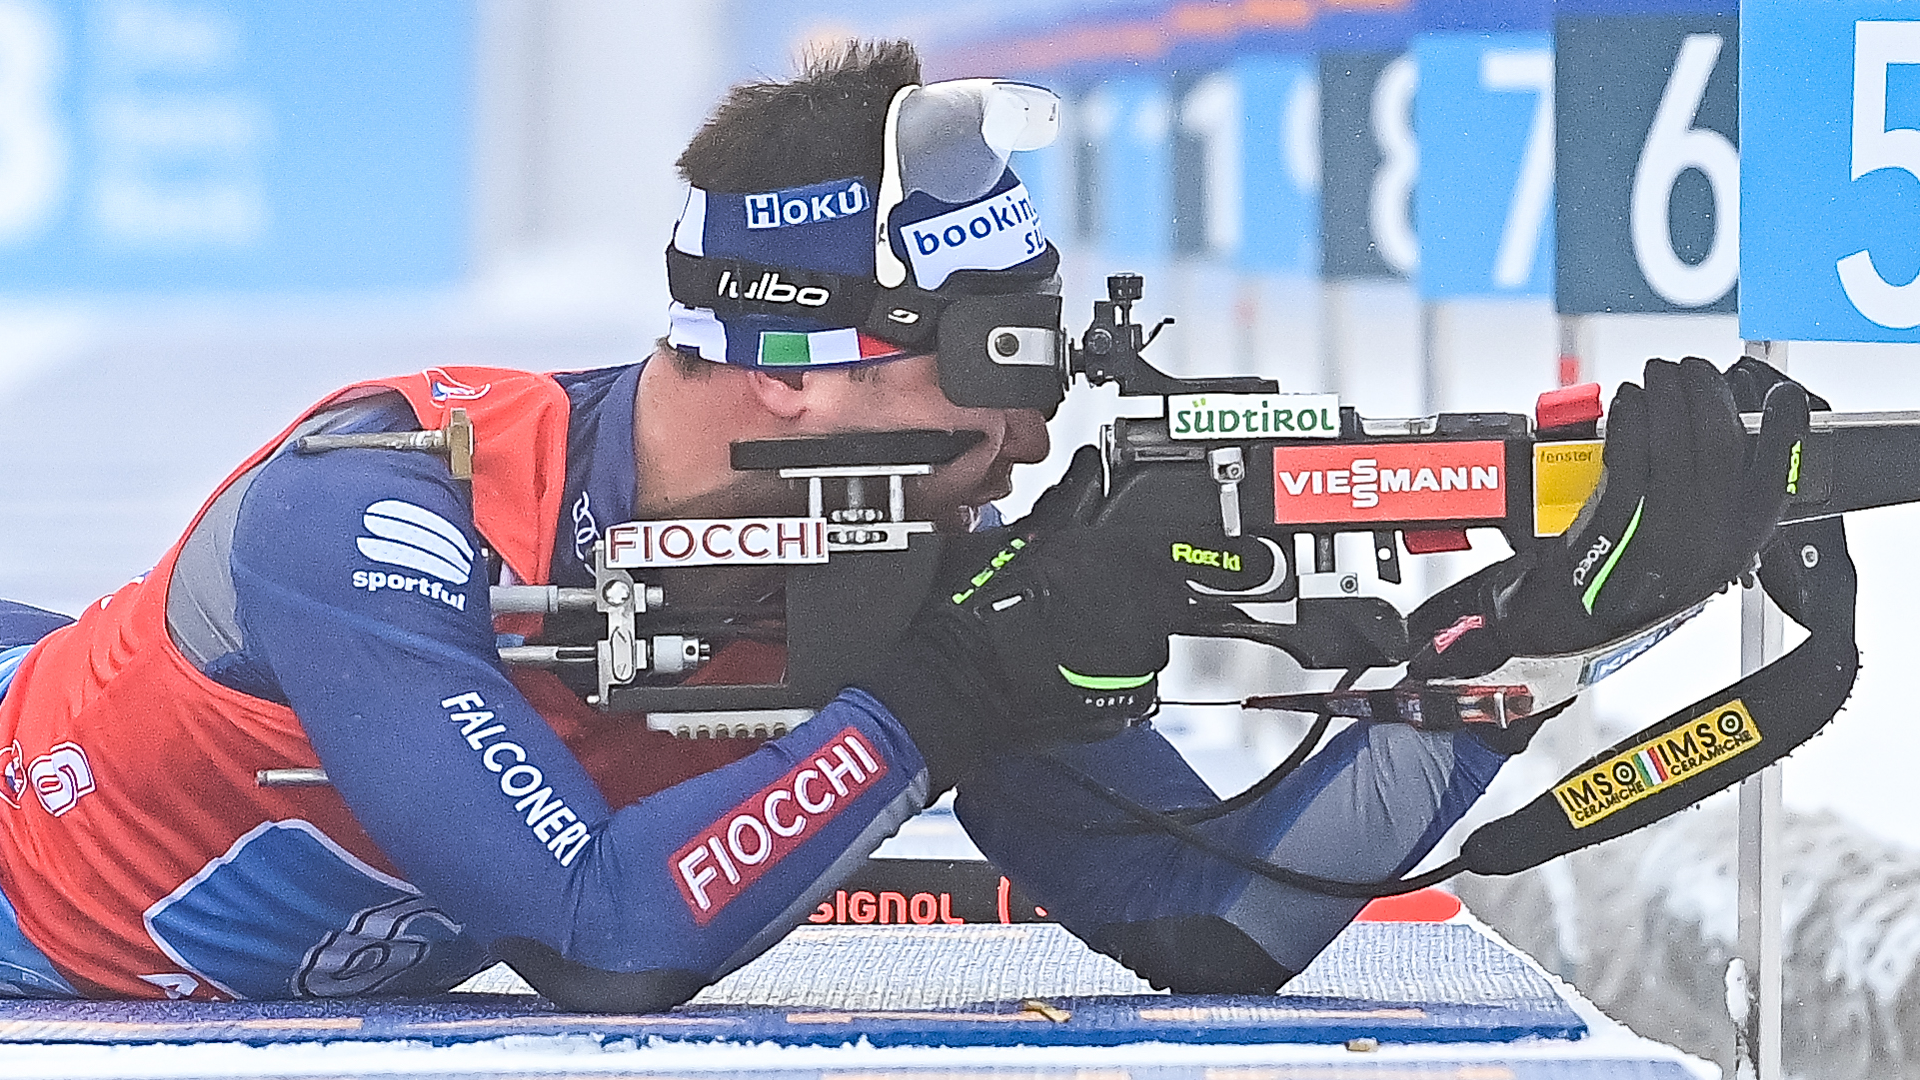 BIATHLON. SUPER ITALY IN NOVE MESTO